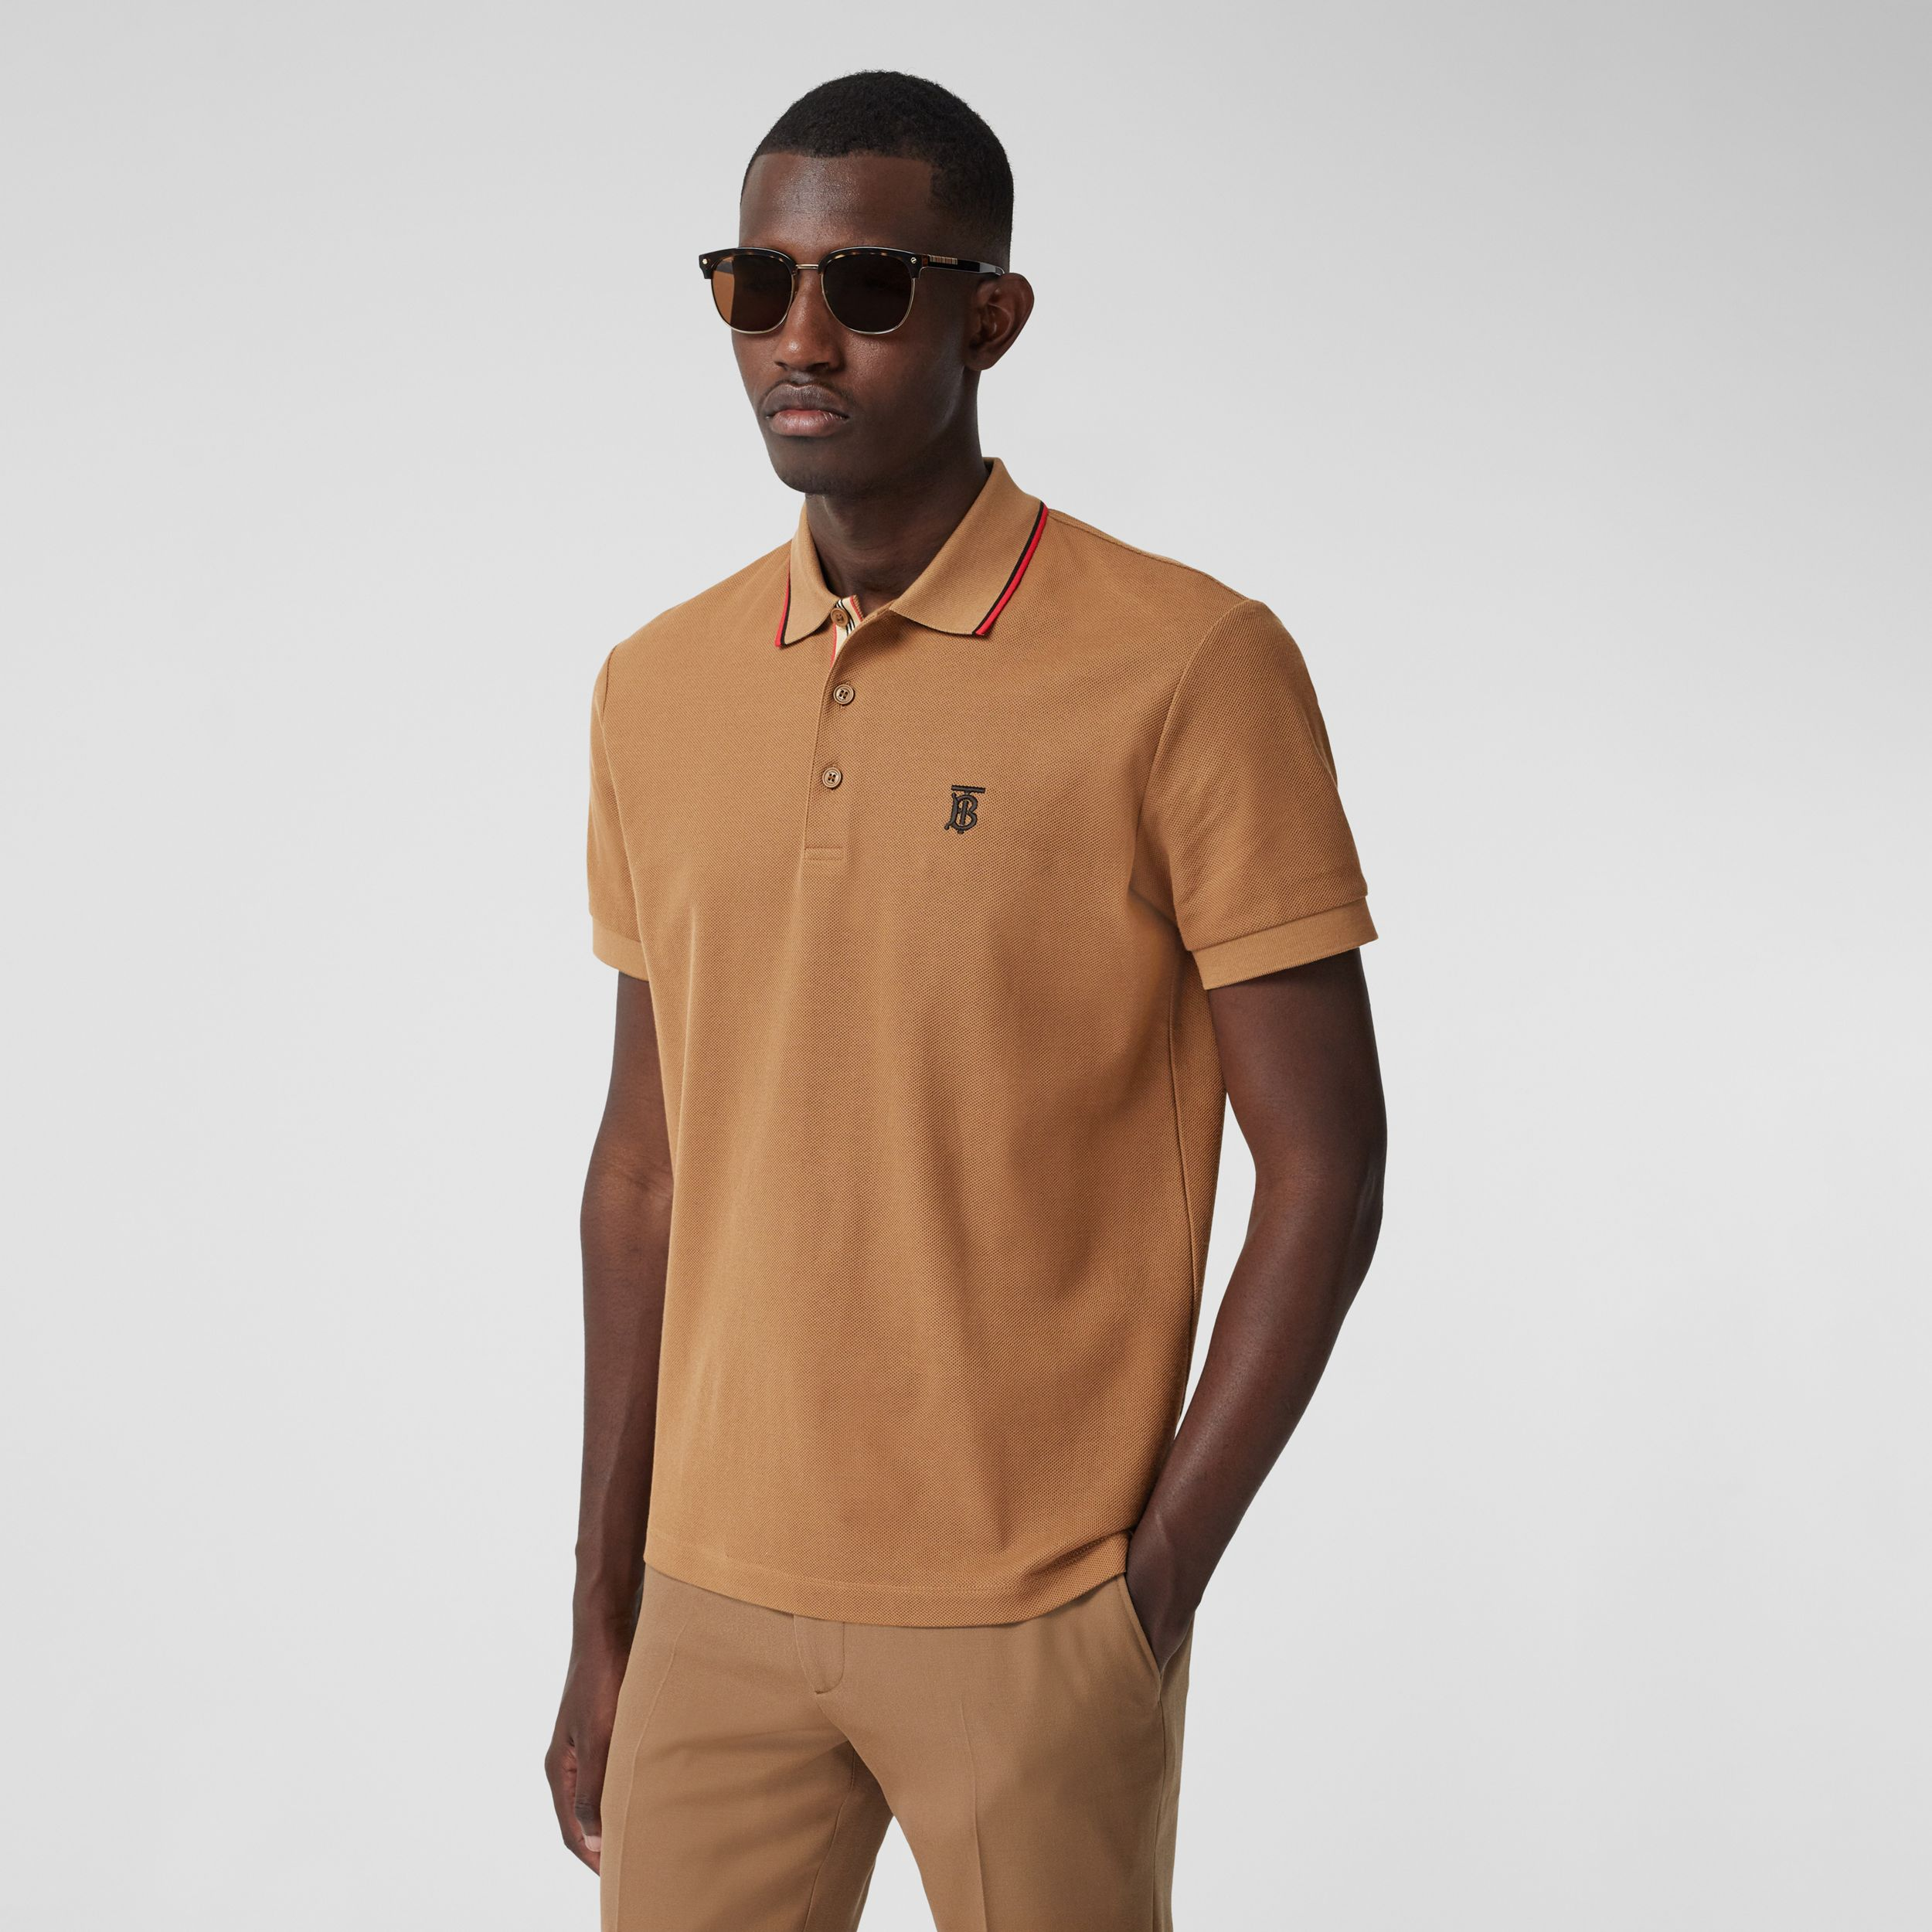 Monogram Motif Cotton Piqué Polo Shirt in Warm Brown - Men | Burberry - 1